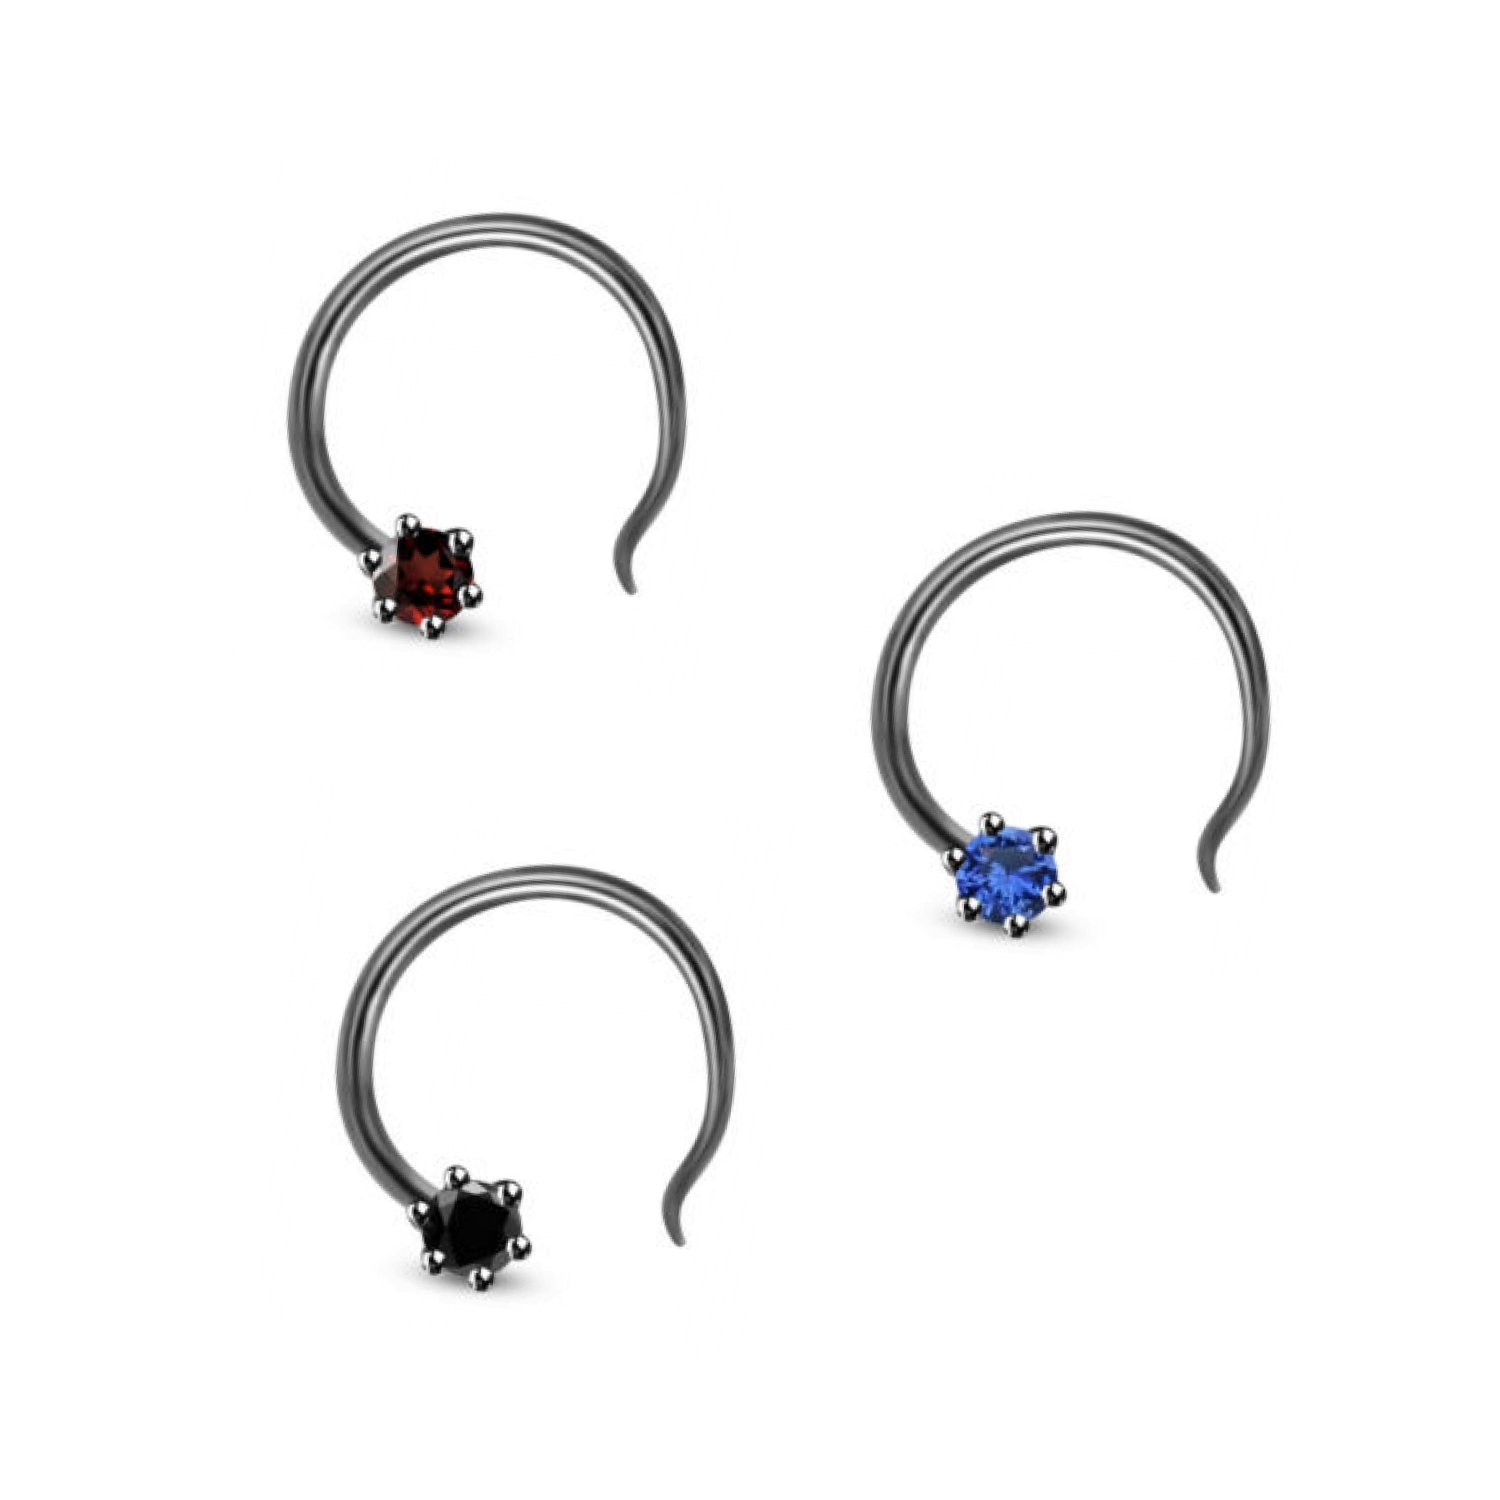 925 Sterling Silver Solitaire Nose Rings Studs Screw Piercing Body Jewelry in Three CZ Color Stone